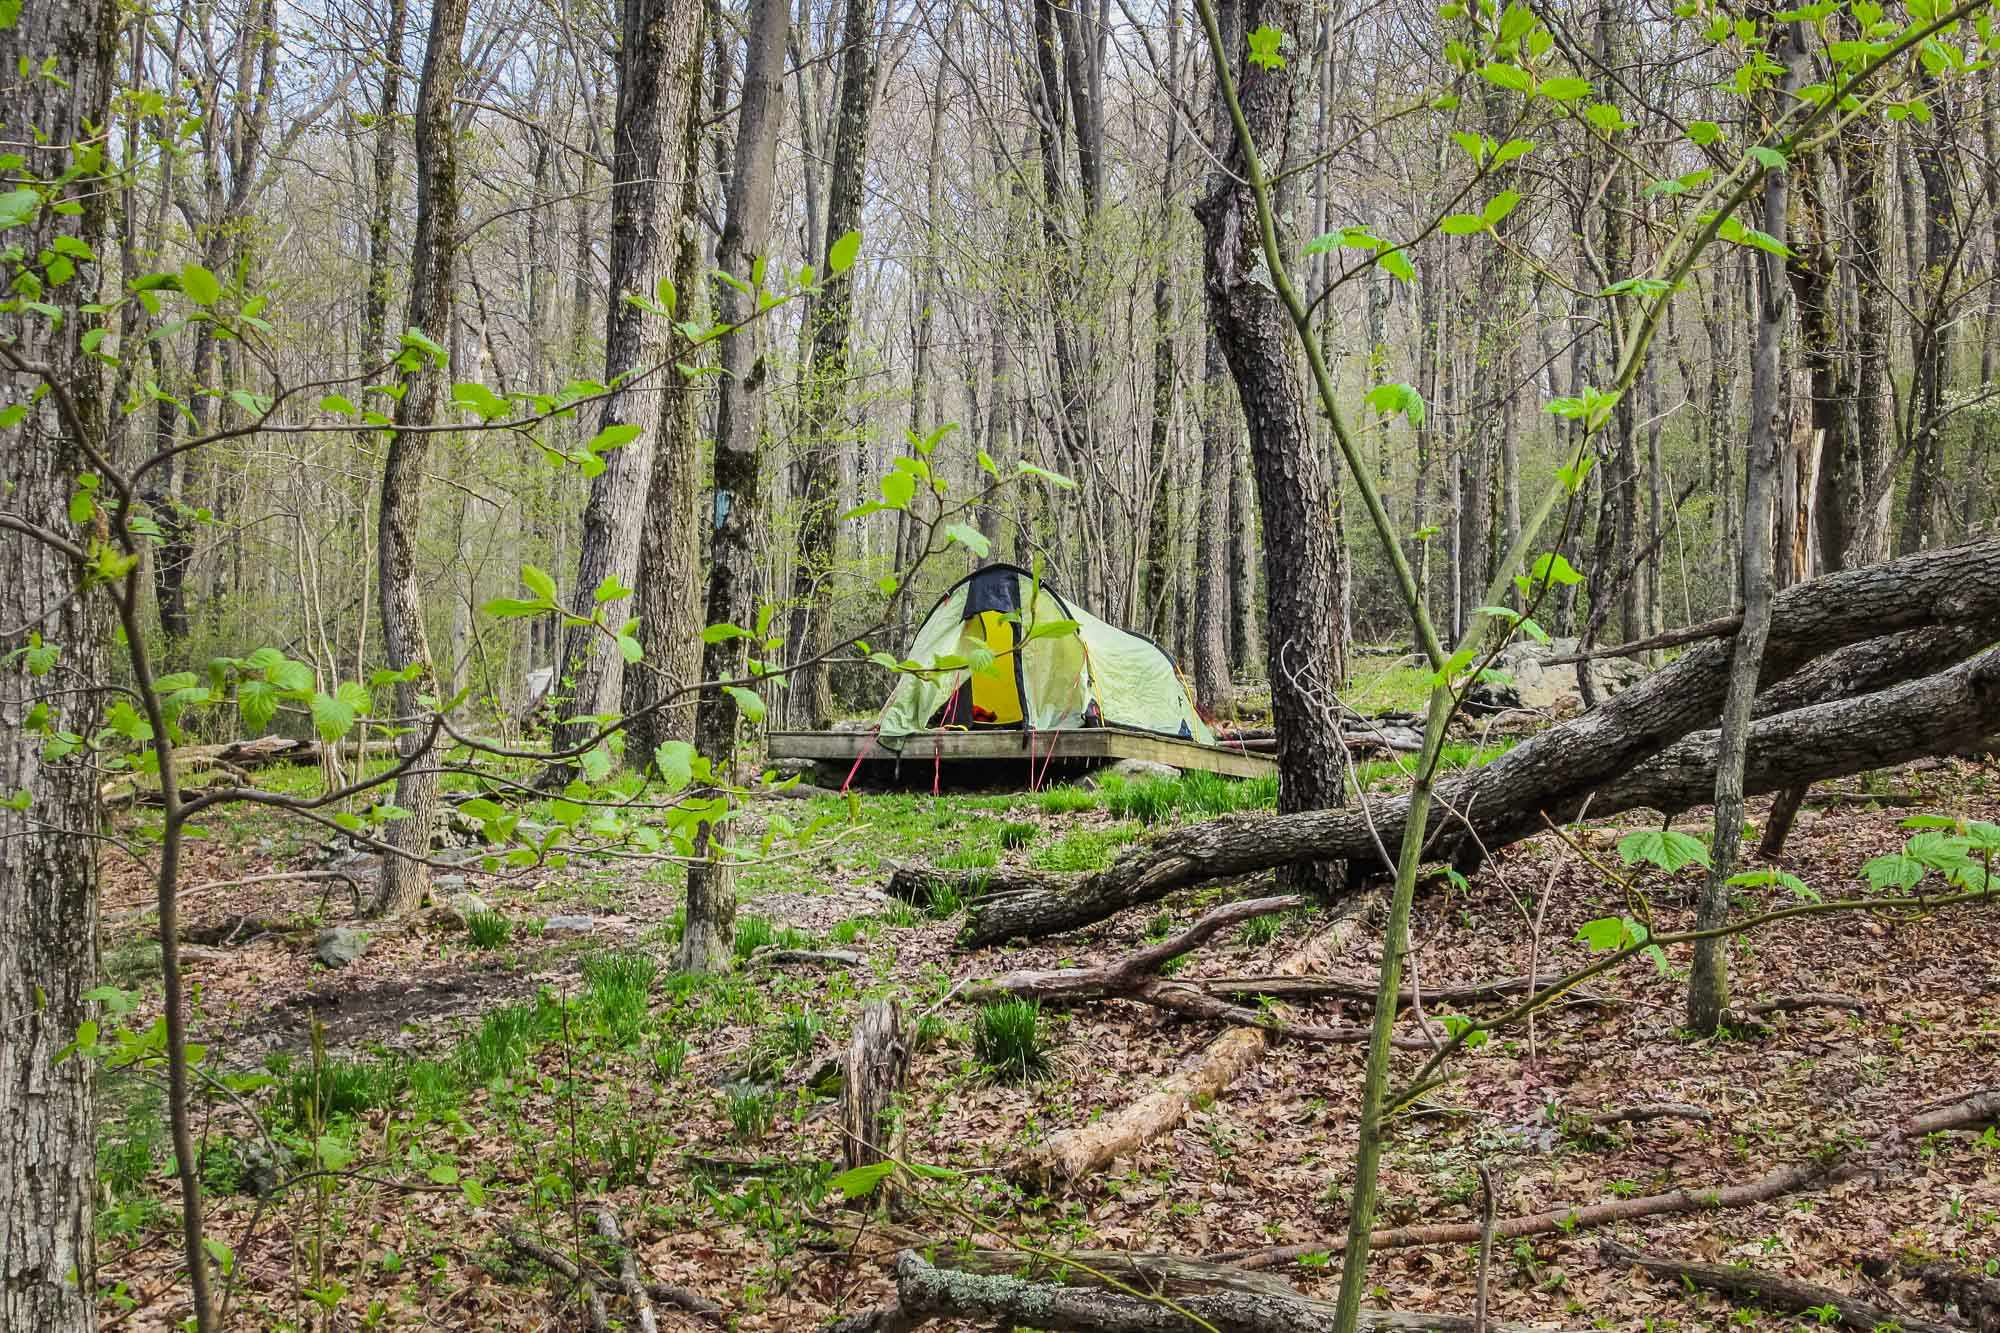 Camping During COVID: What's Open & Where to Go